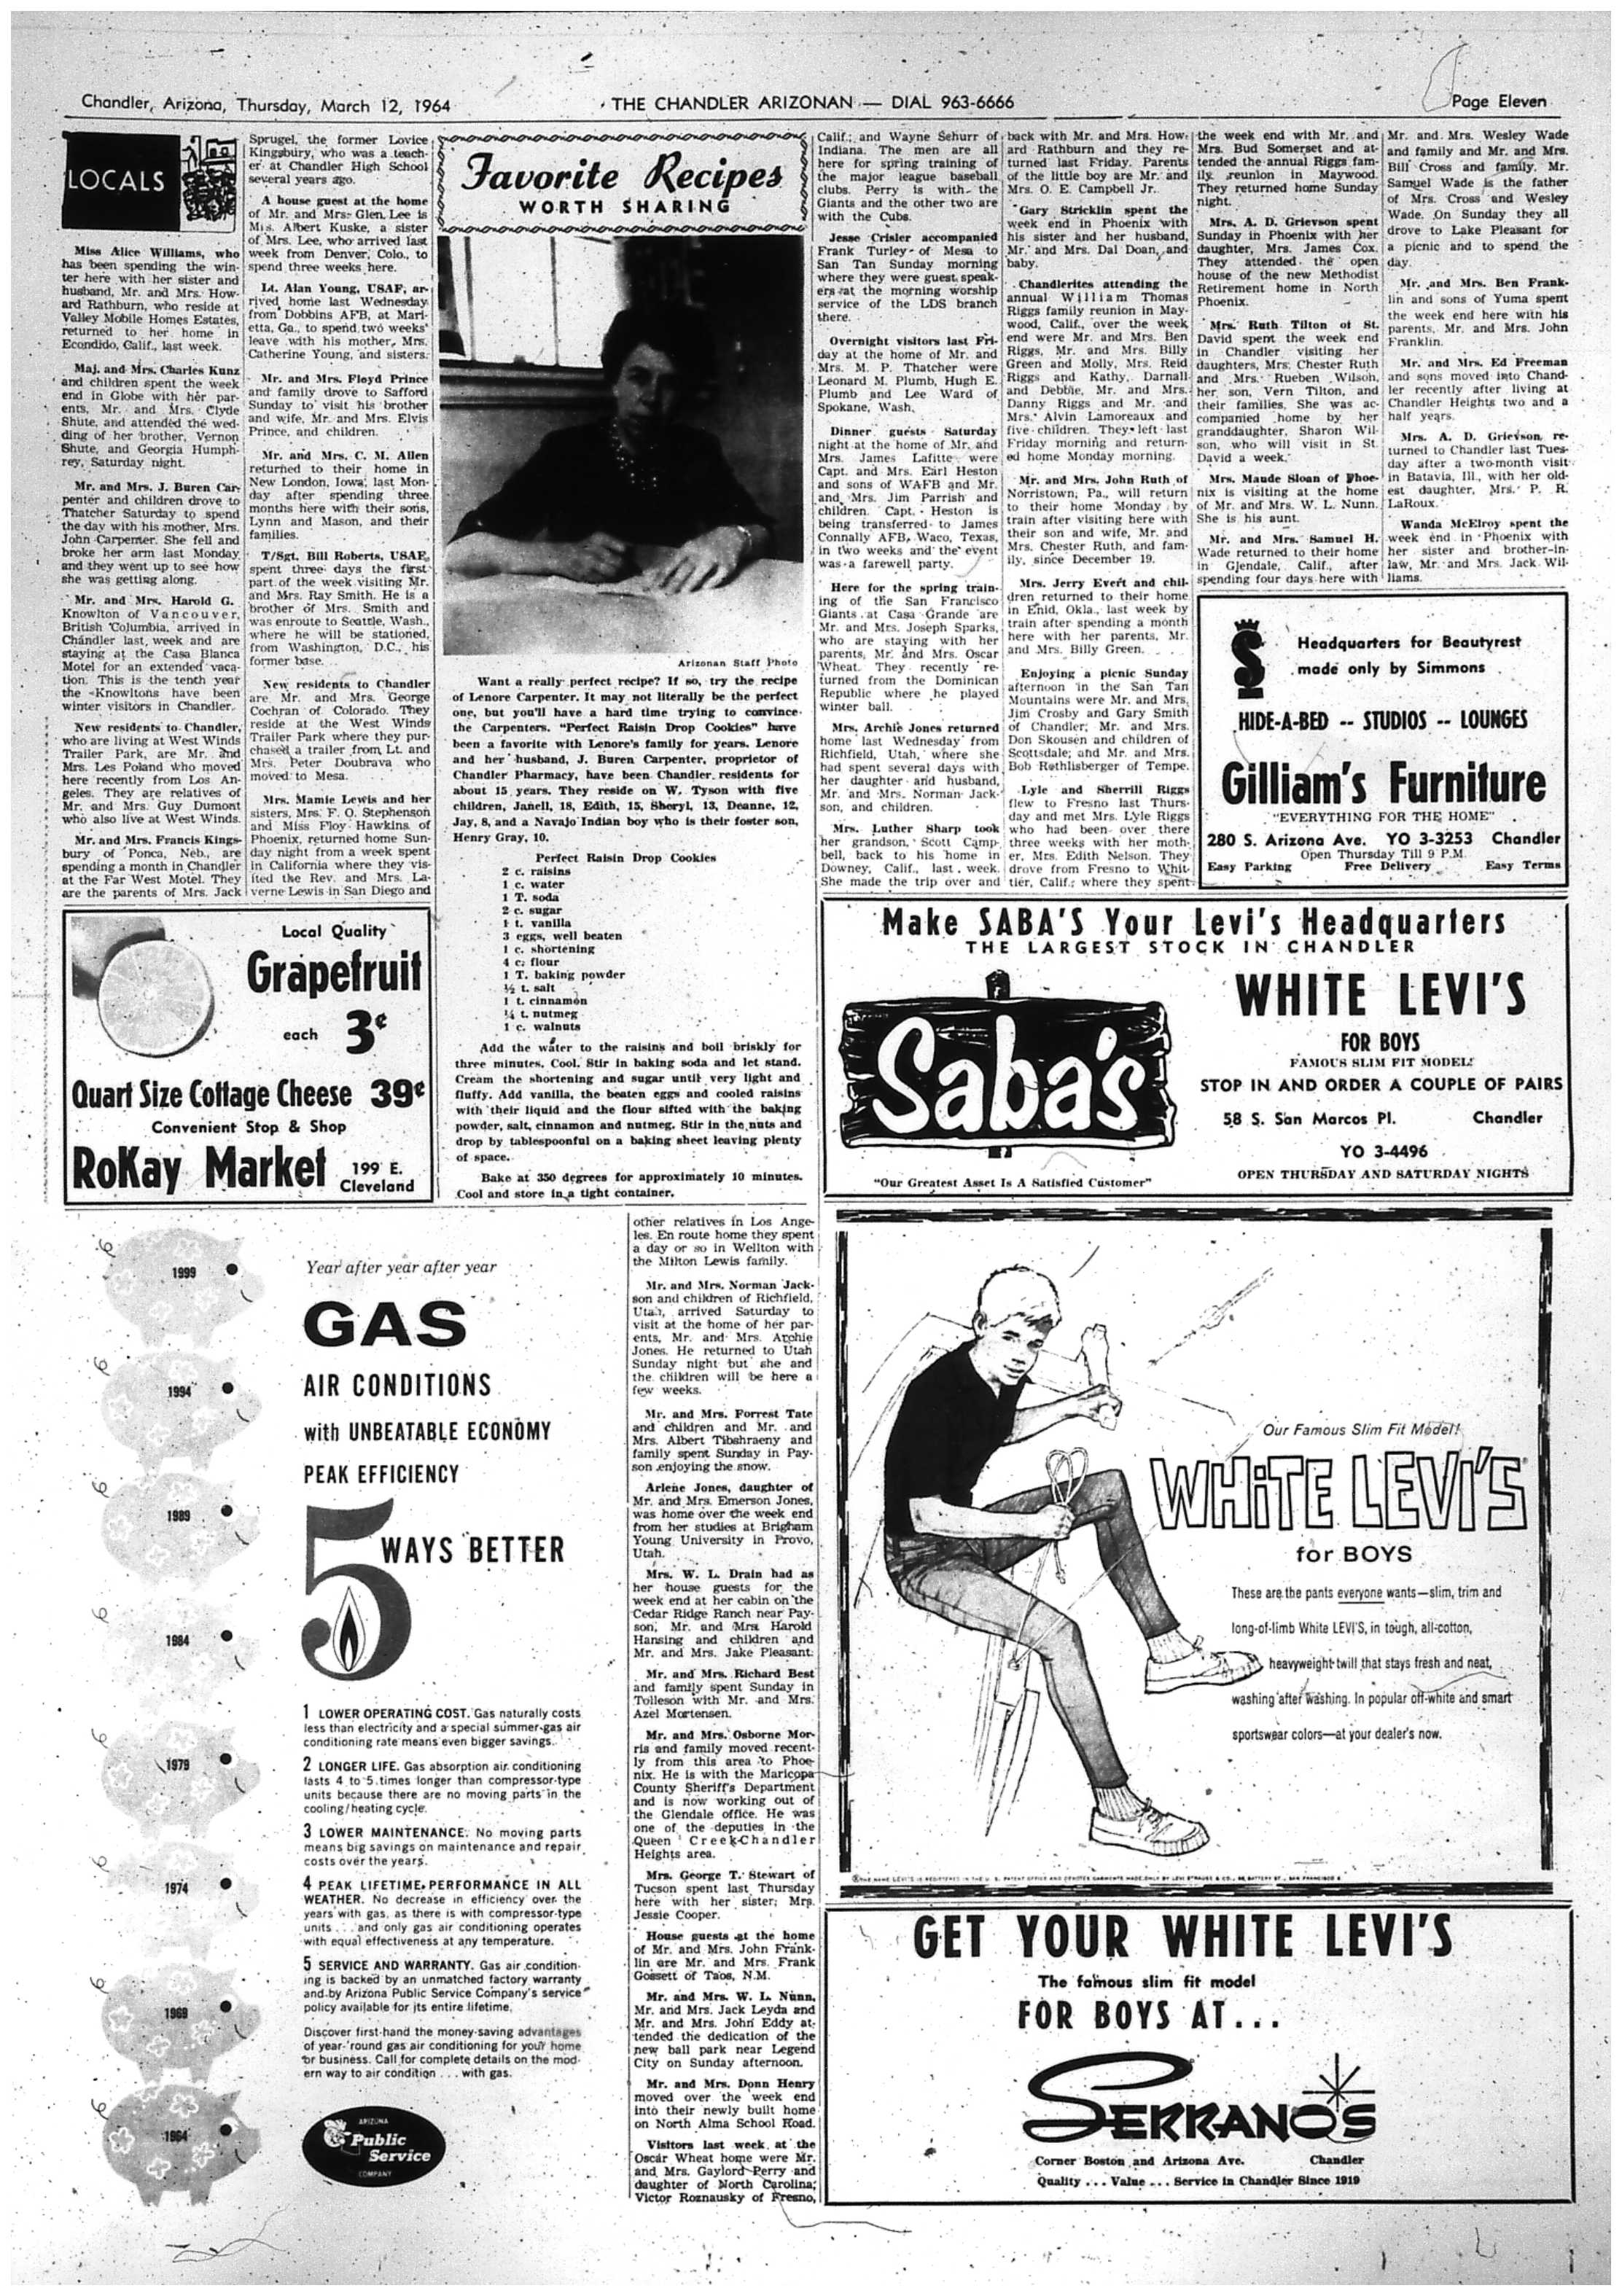 03-12-1964 - Page 11 .jpg